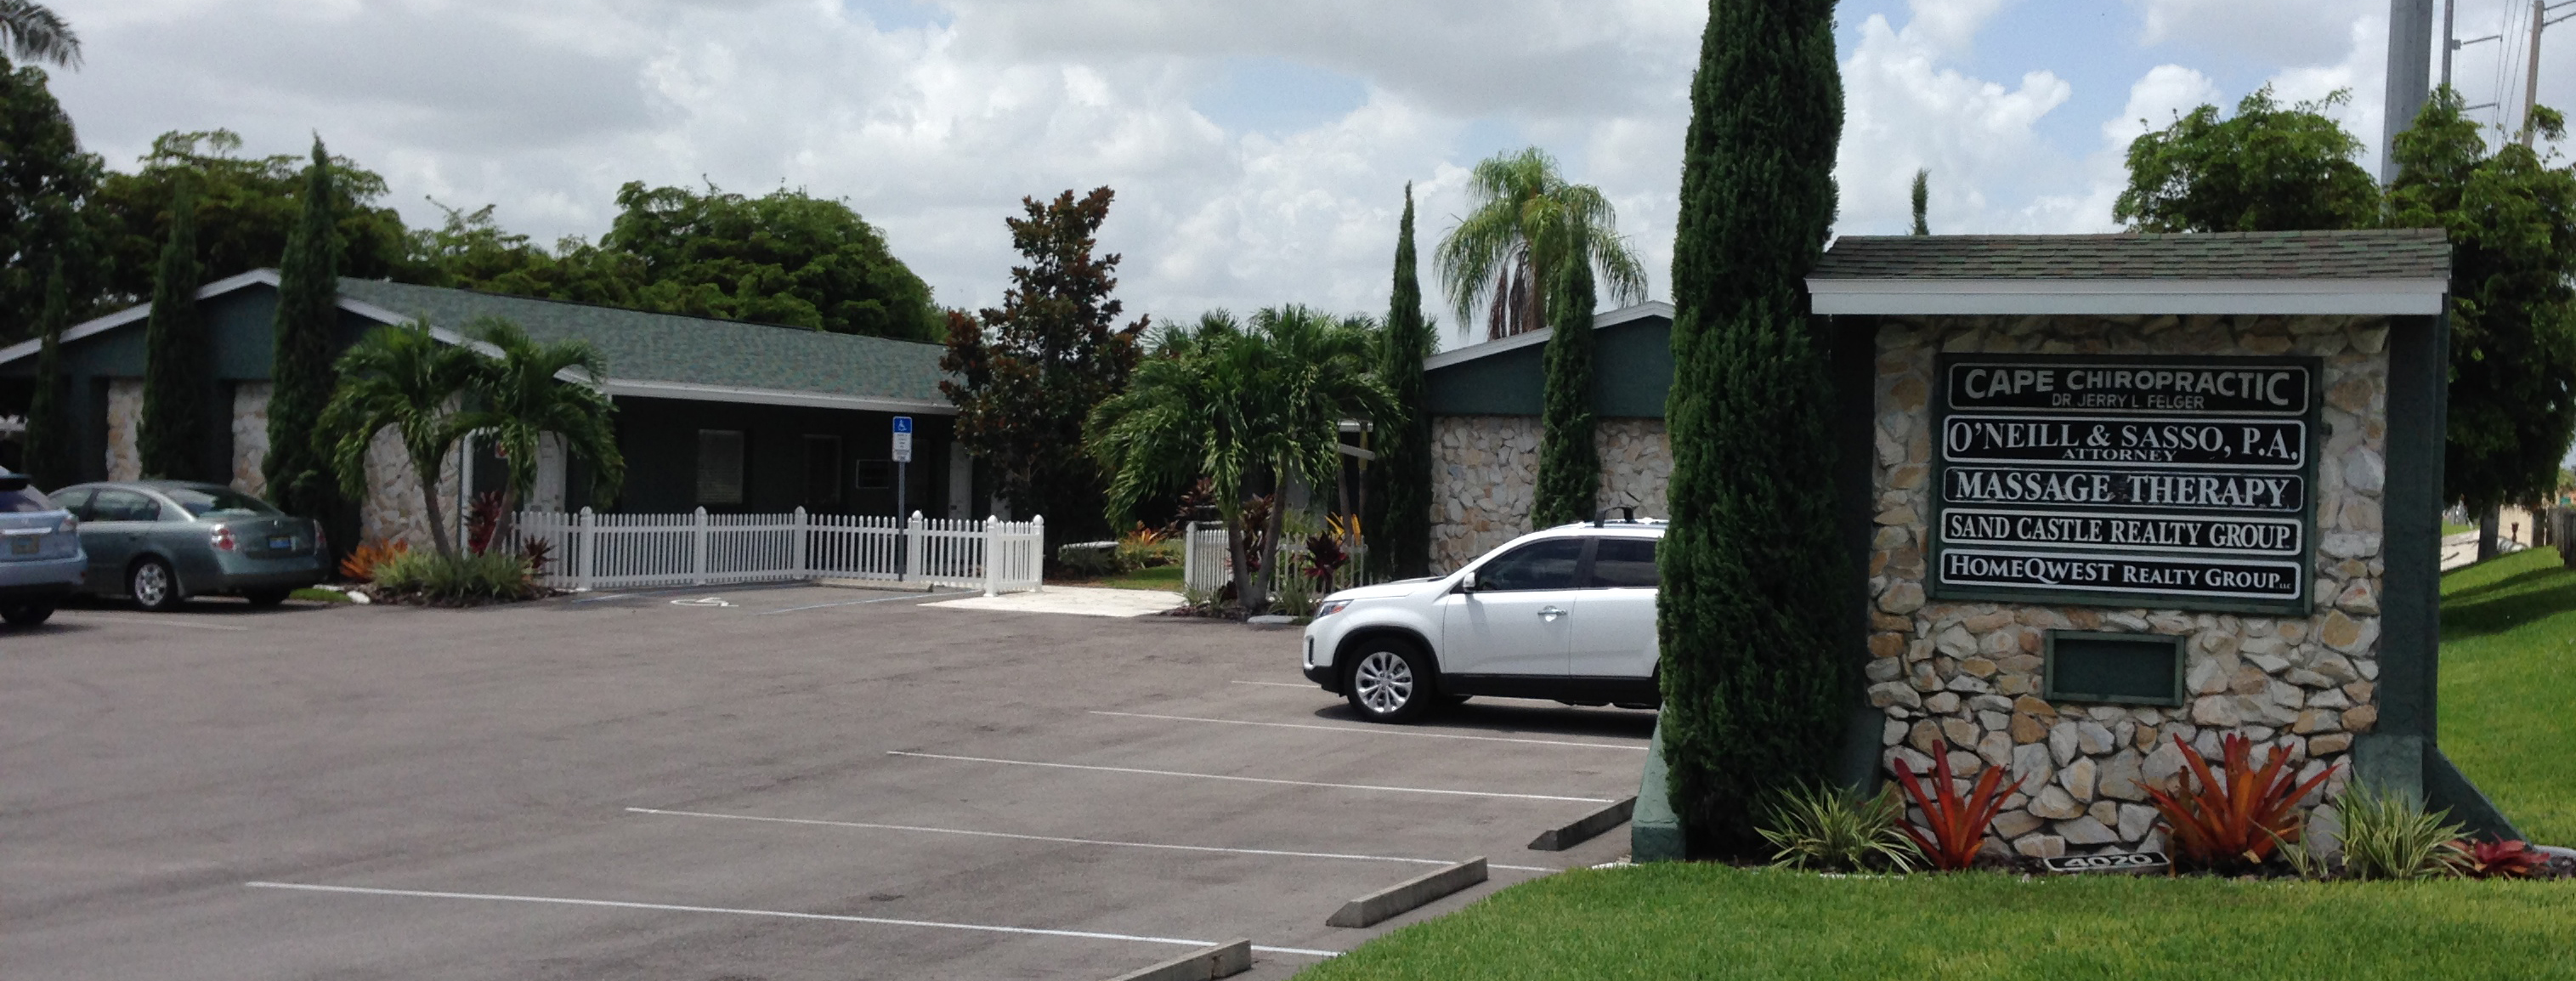 Law Offices of O'Neill and Sasso - Cape Coral Attorney - Office Bldg